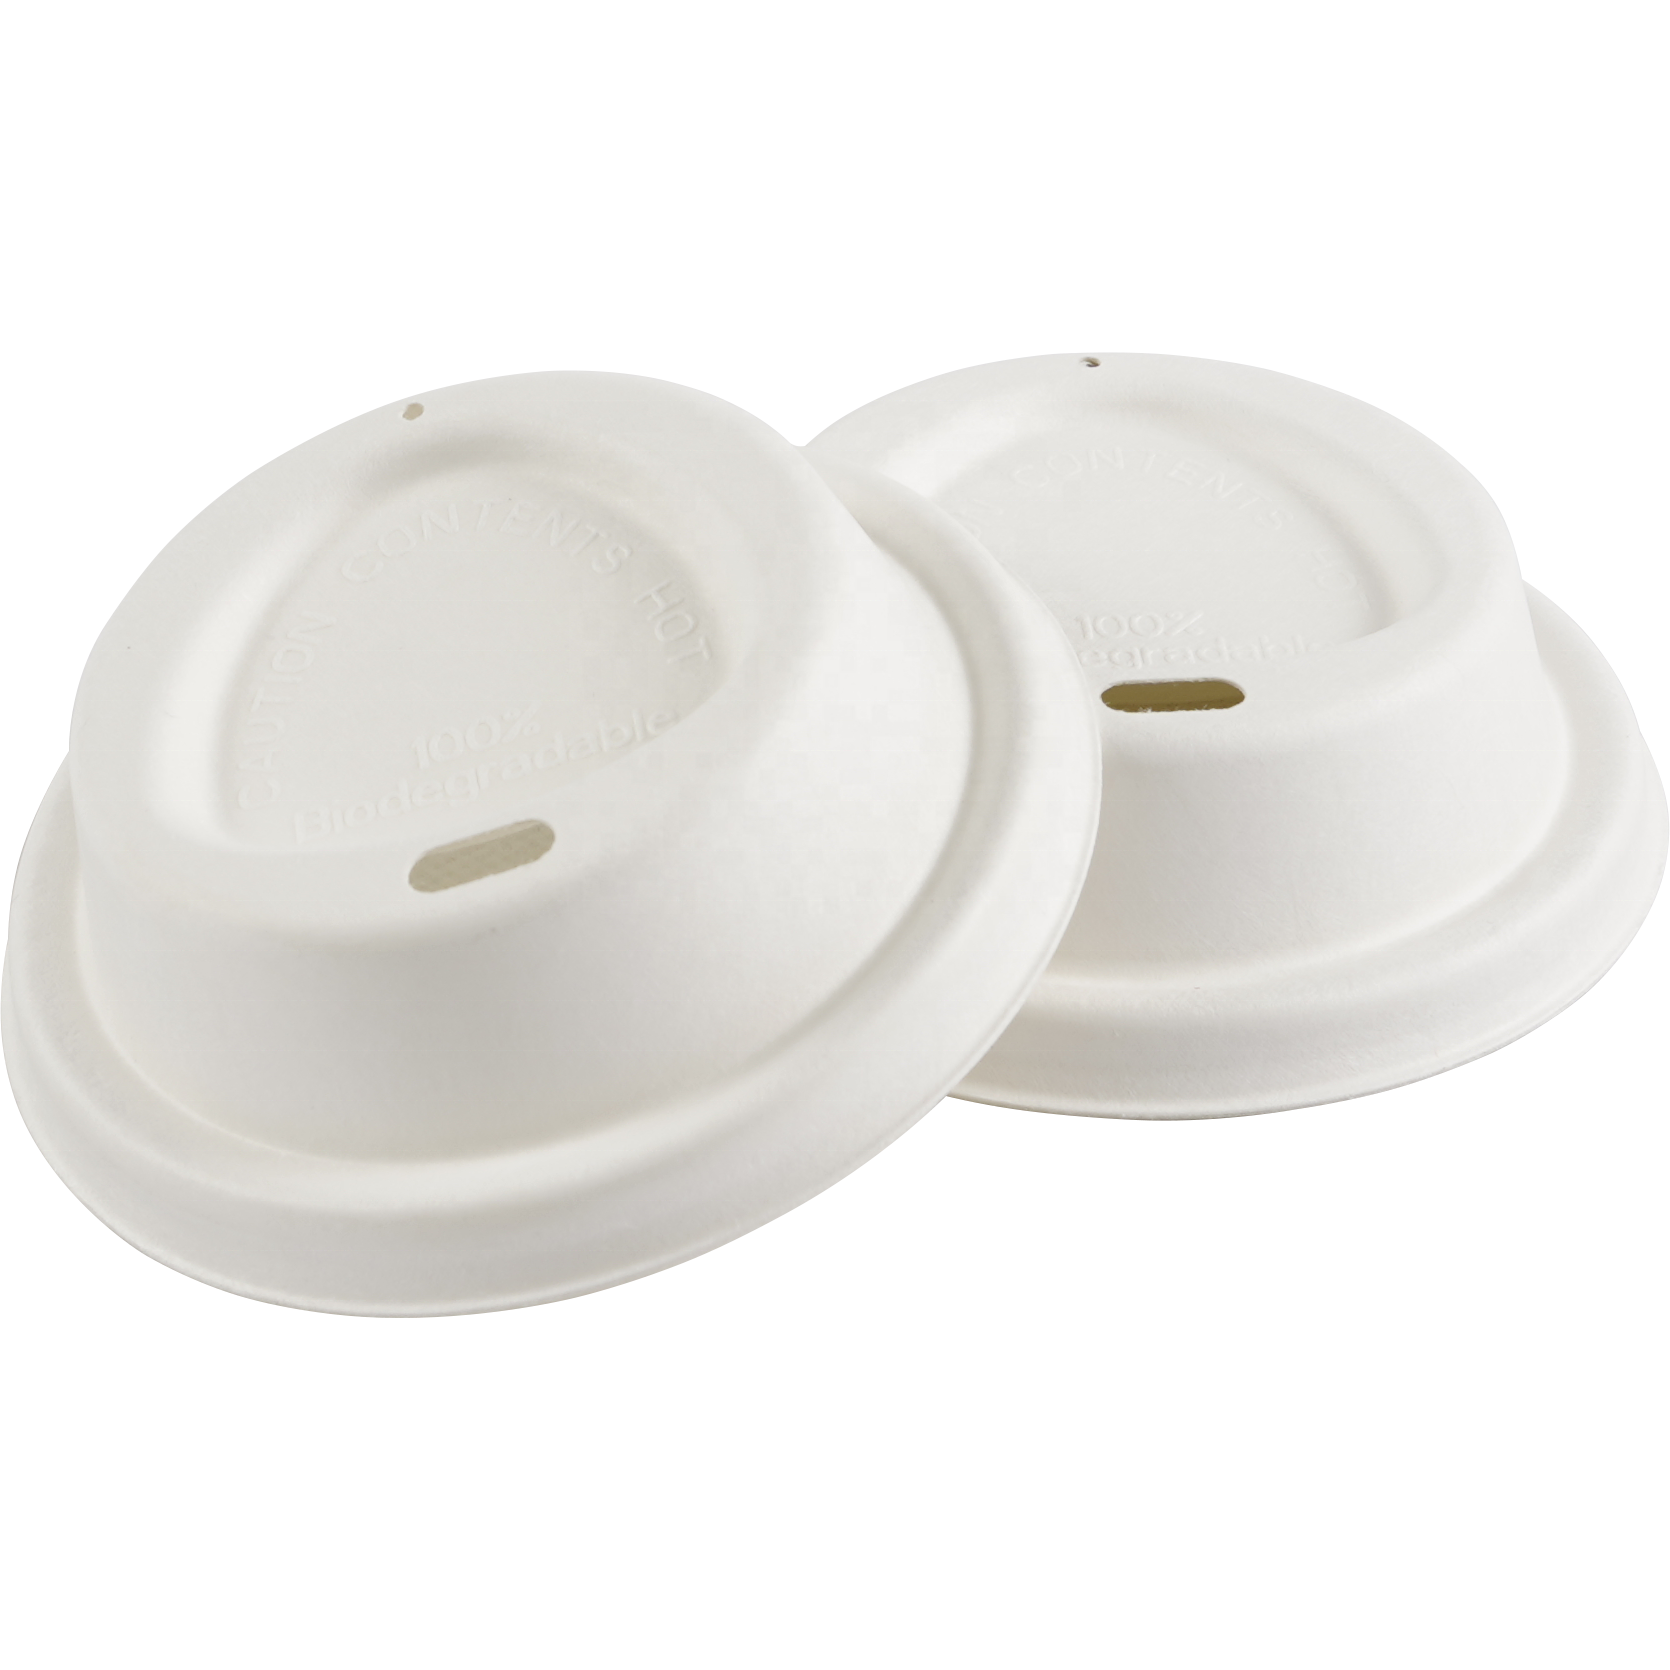 80mm Biodegradable Paper Coffee Cup Lid - Pulp Cup Lid Customize Pulp Molded Pulp Package